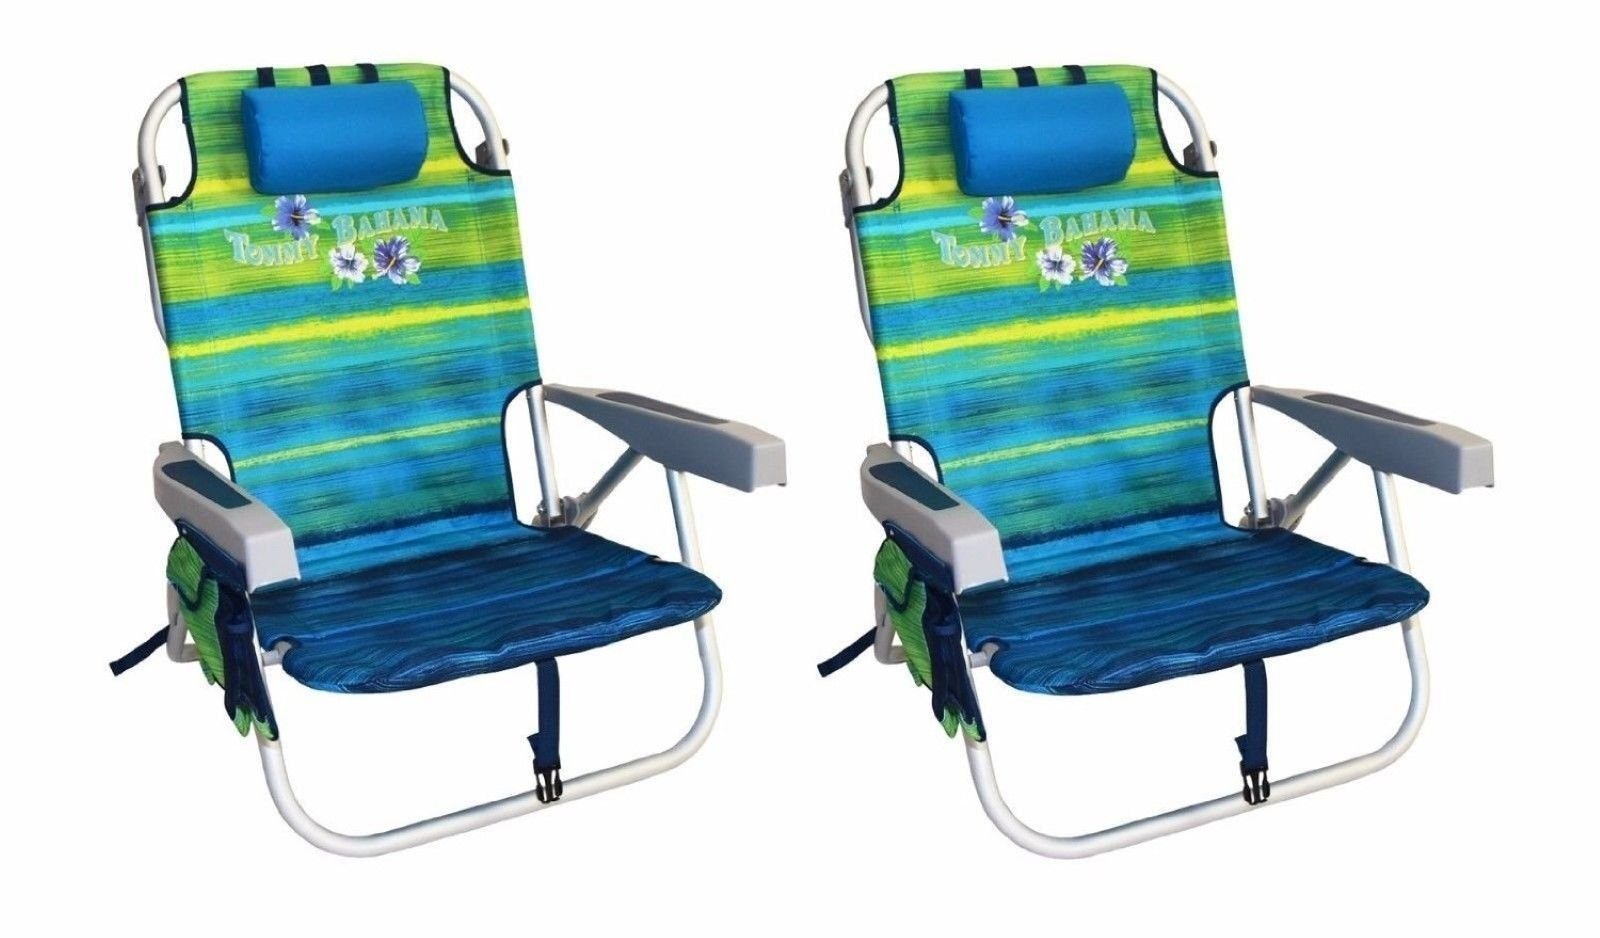 Outdoor Furniture - Blowout Sale! Save Up To 53%